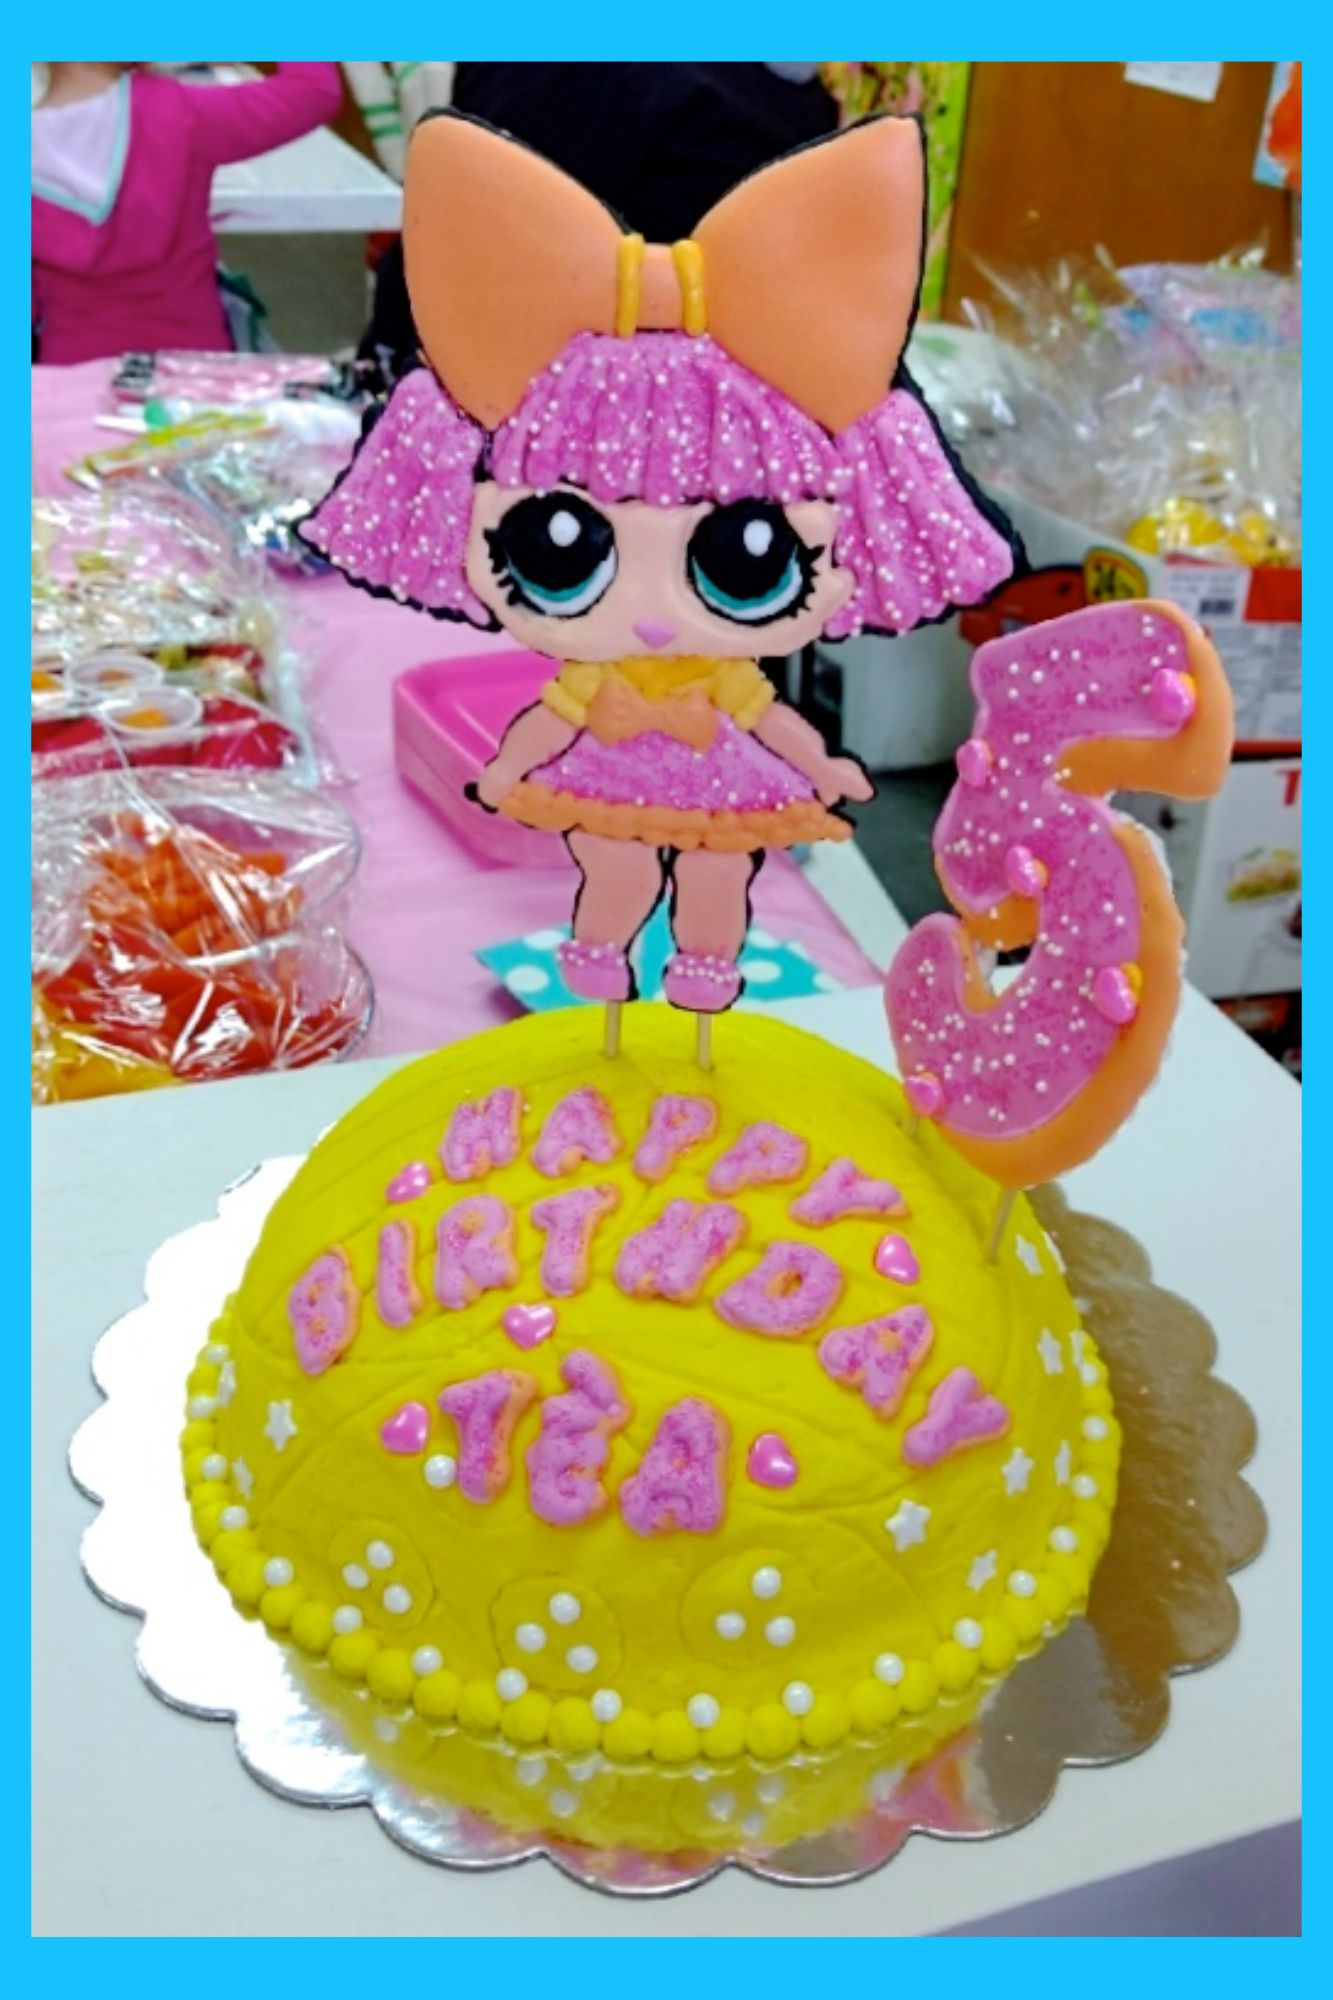 LOL Surprise Dolls birthday cake with Glitter Queen LOL Dolls